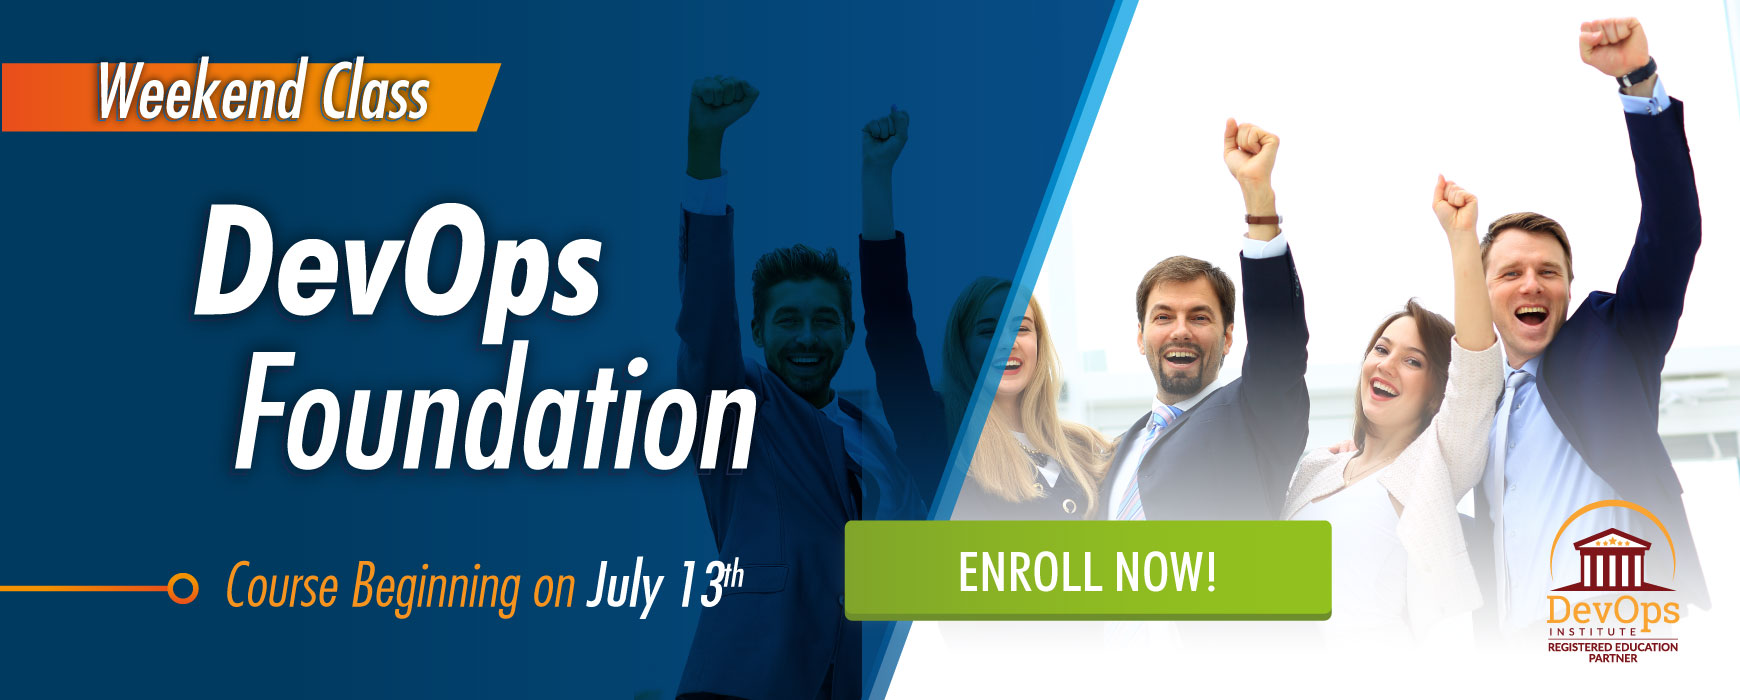 DevOps Foundation Certification Course Weekend Class July 13th - 14th